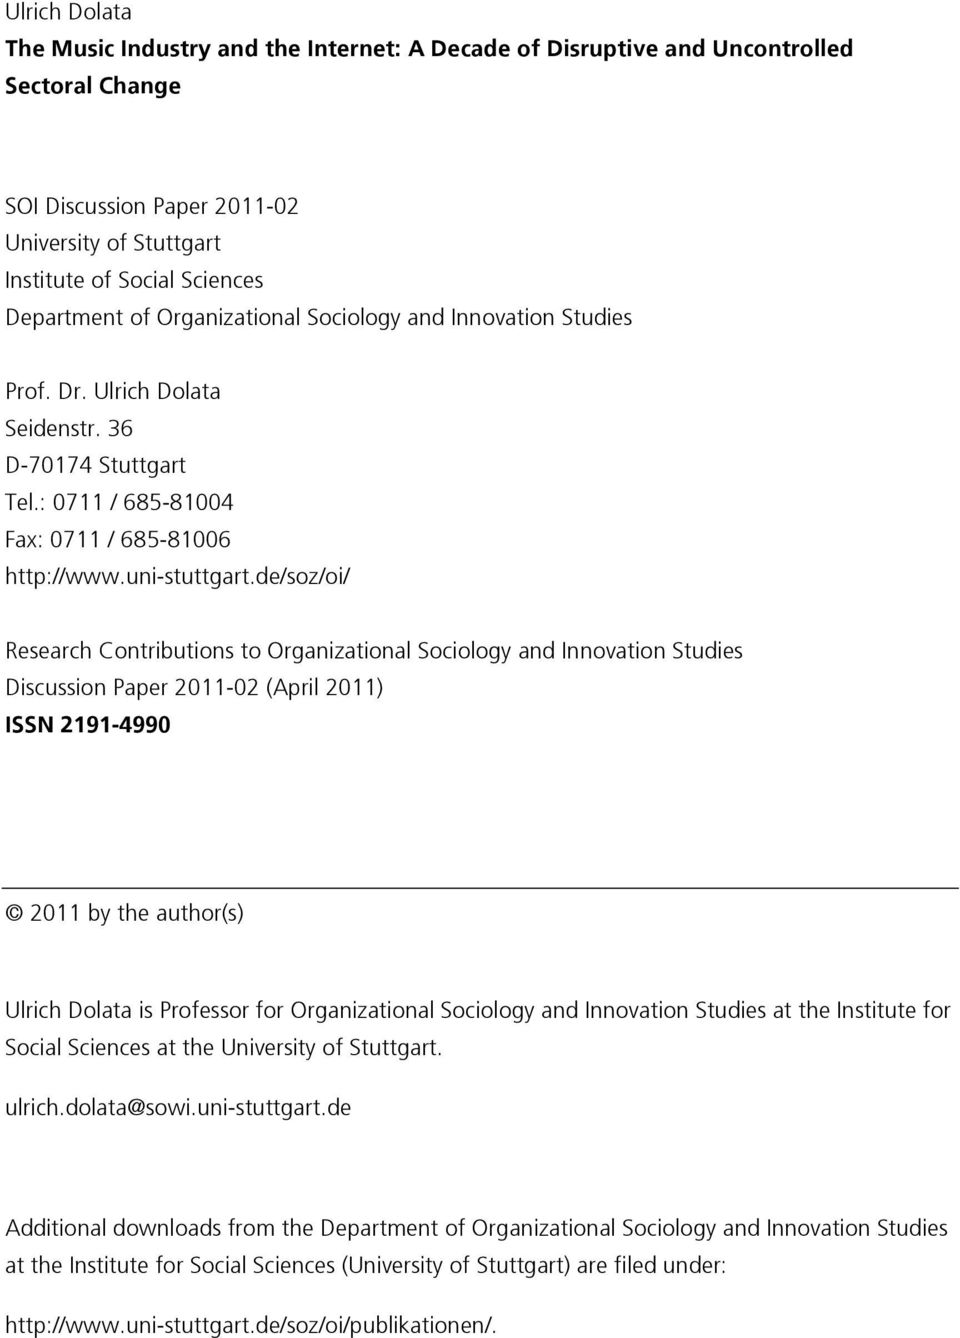 81004 Fax: 0711 / 685!81006 http://www.uni!stuttgart.de/soz/oi/ Research Contributions to Organizational Sociology and Innovation Studies Discussion Paper 2011!02 (April 2011) ISSN 2191!